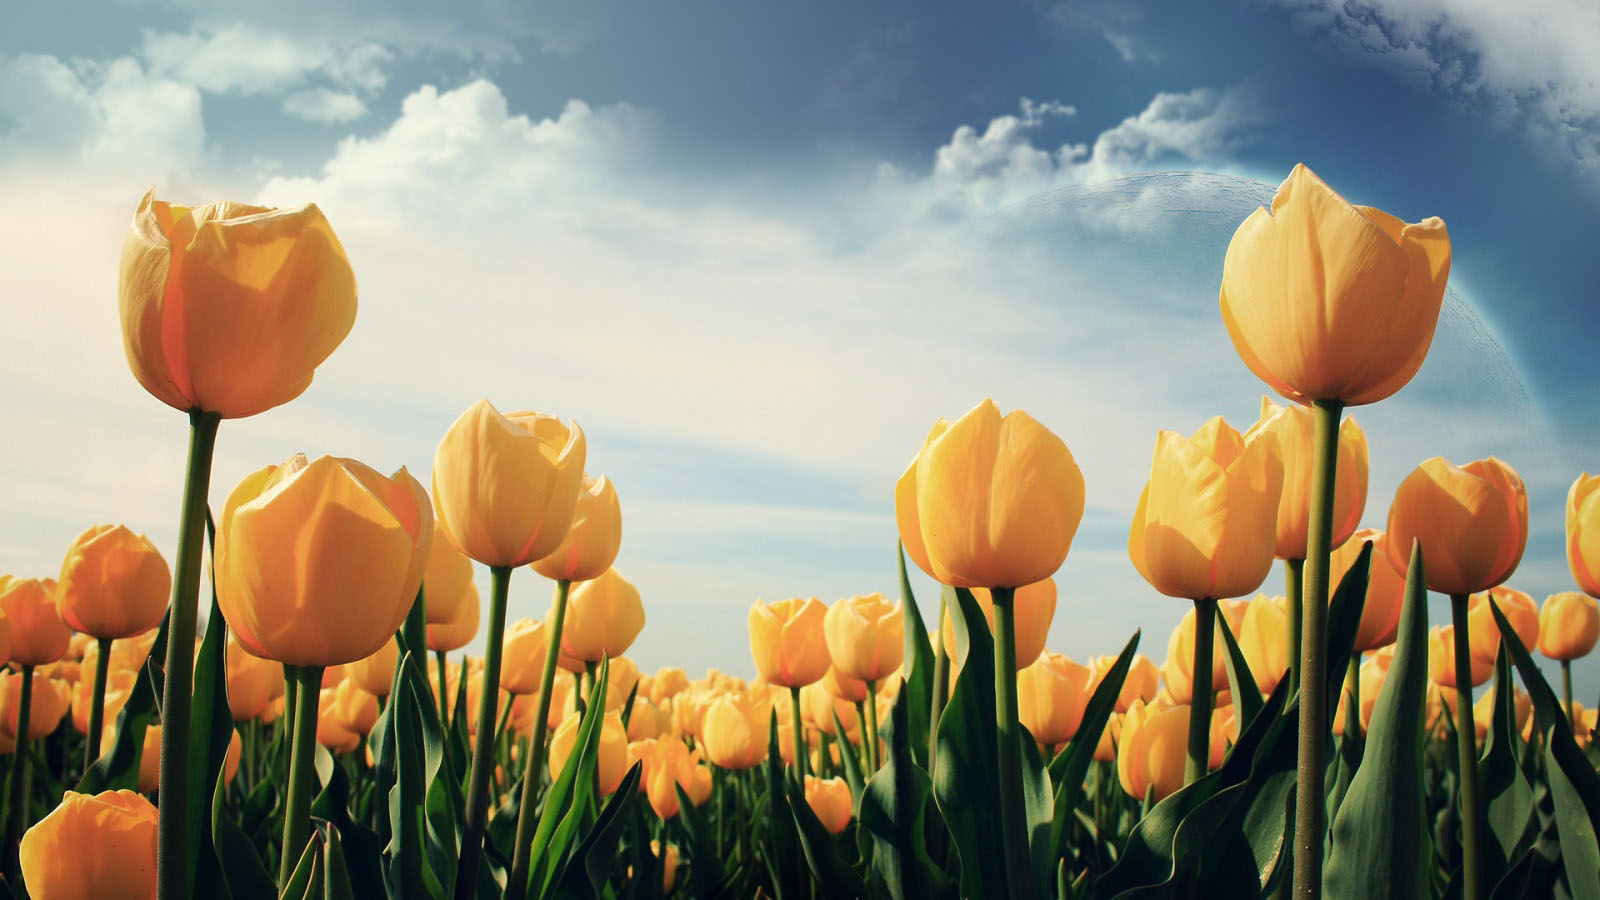 New Year 2014 Hd Wallpapers Tulips Flower Wallpapers Pixelstalk Net